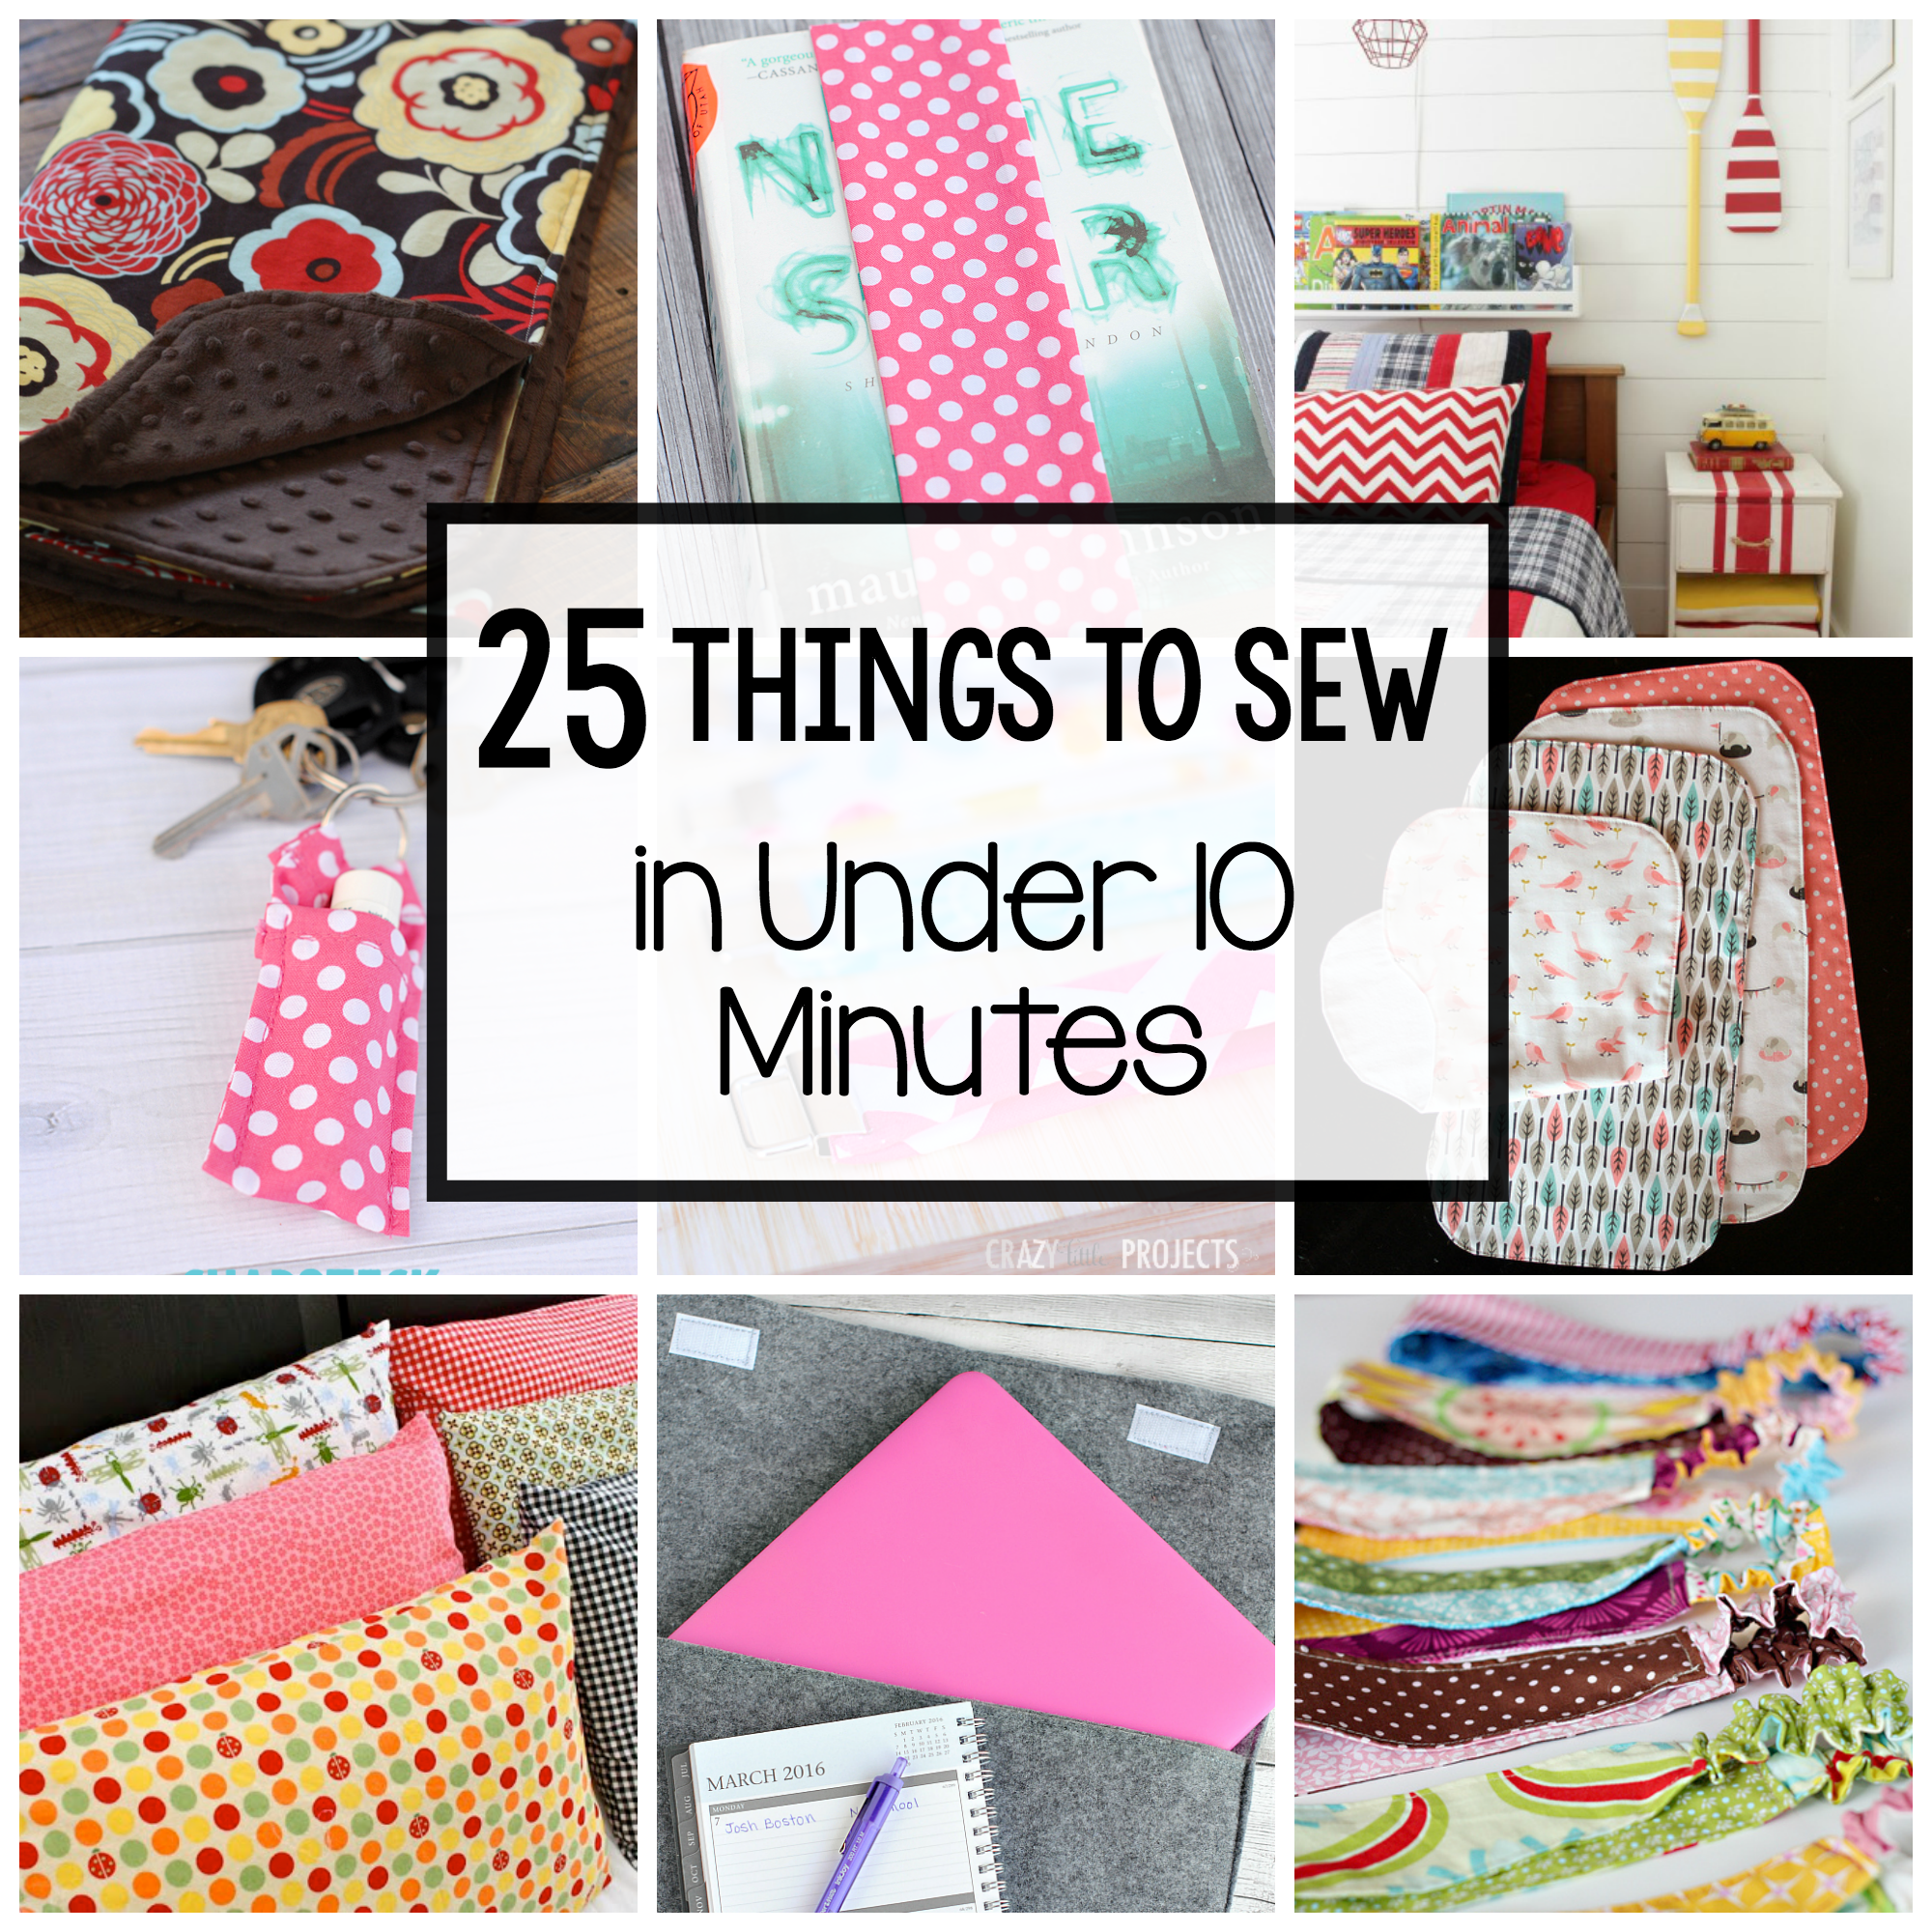 dd1d1502224e Easy Sewing Projects-25 Things to Sew in Under 10 Minutes